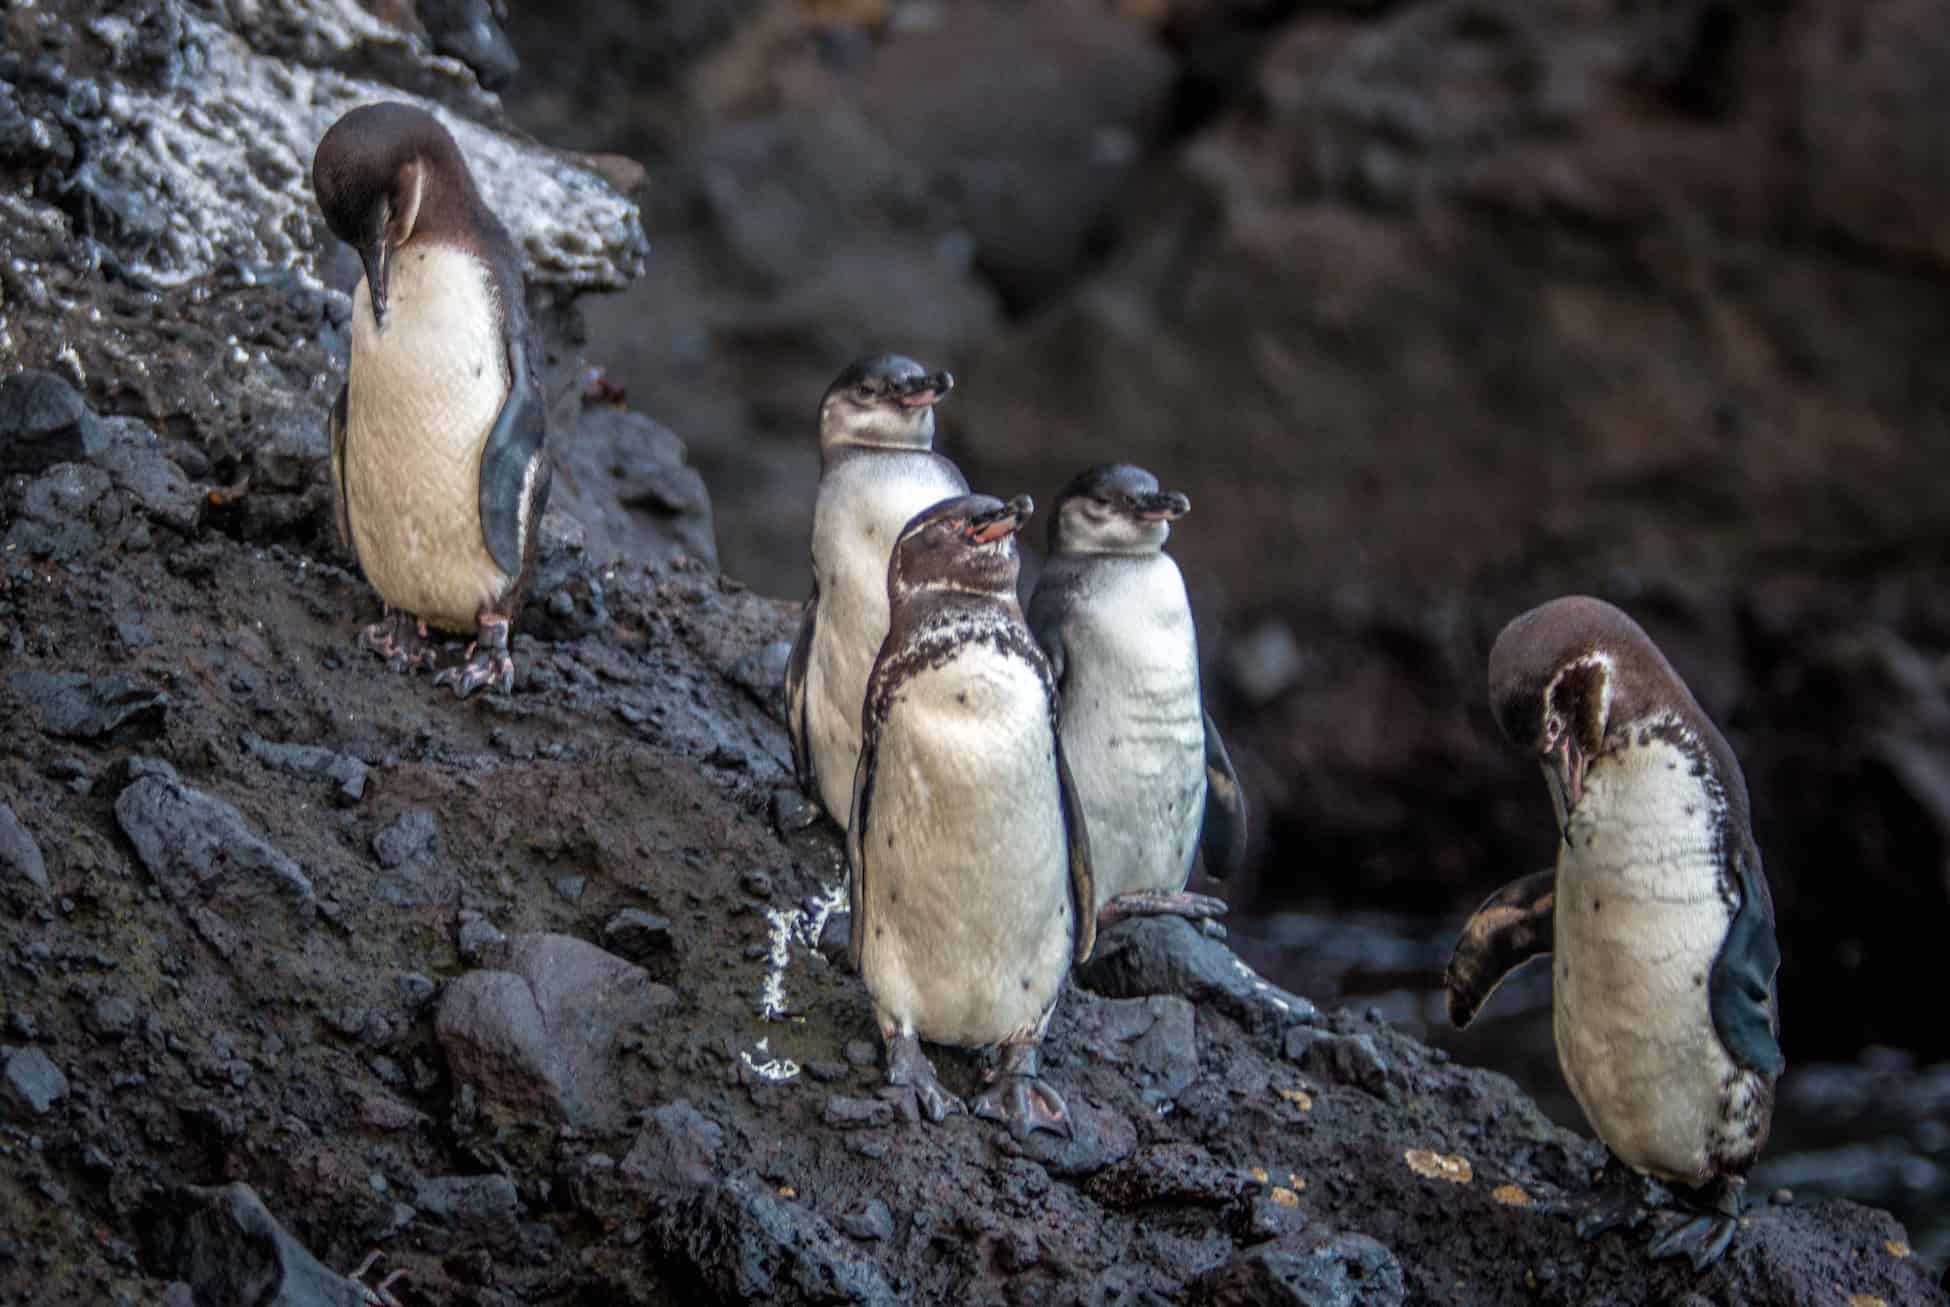 Galapagos Penguins in Isabela Island's Tagus Cove